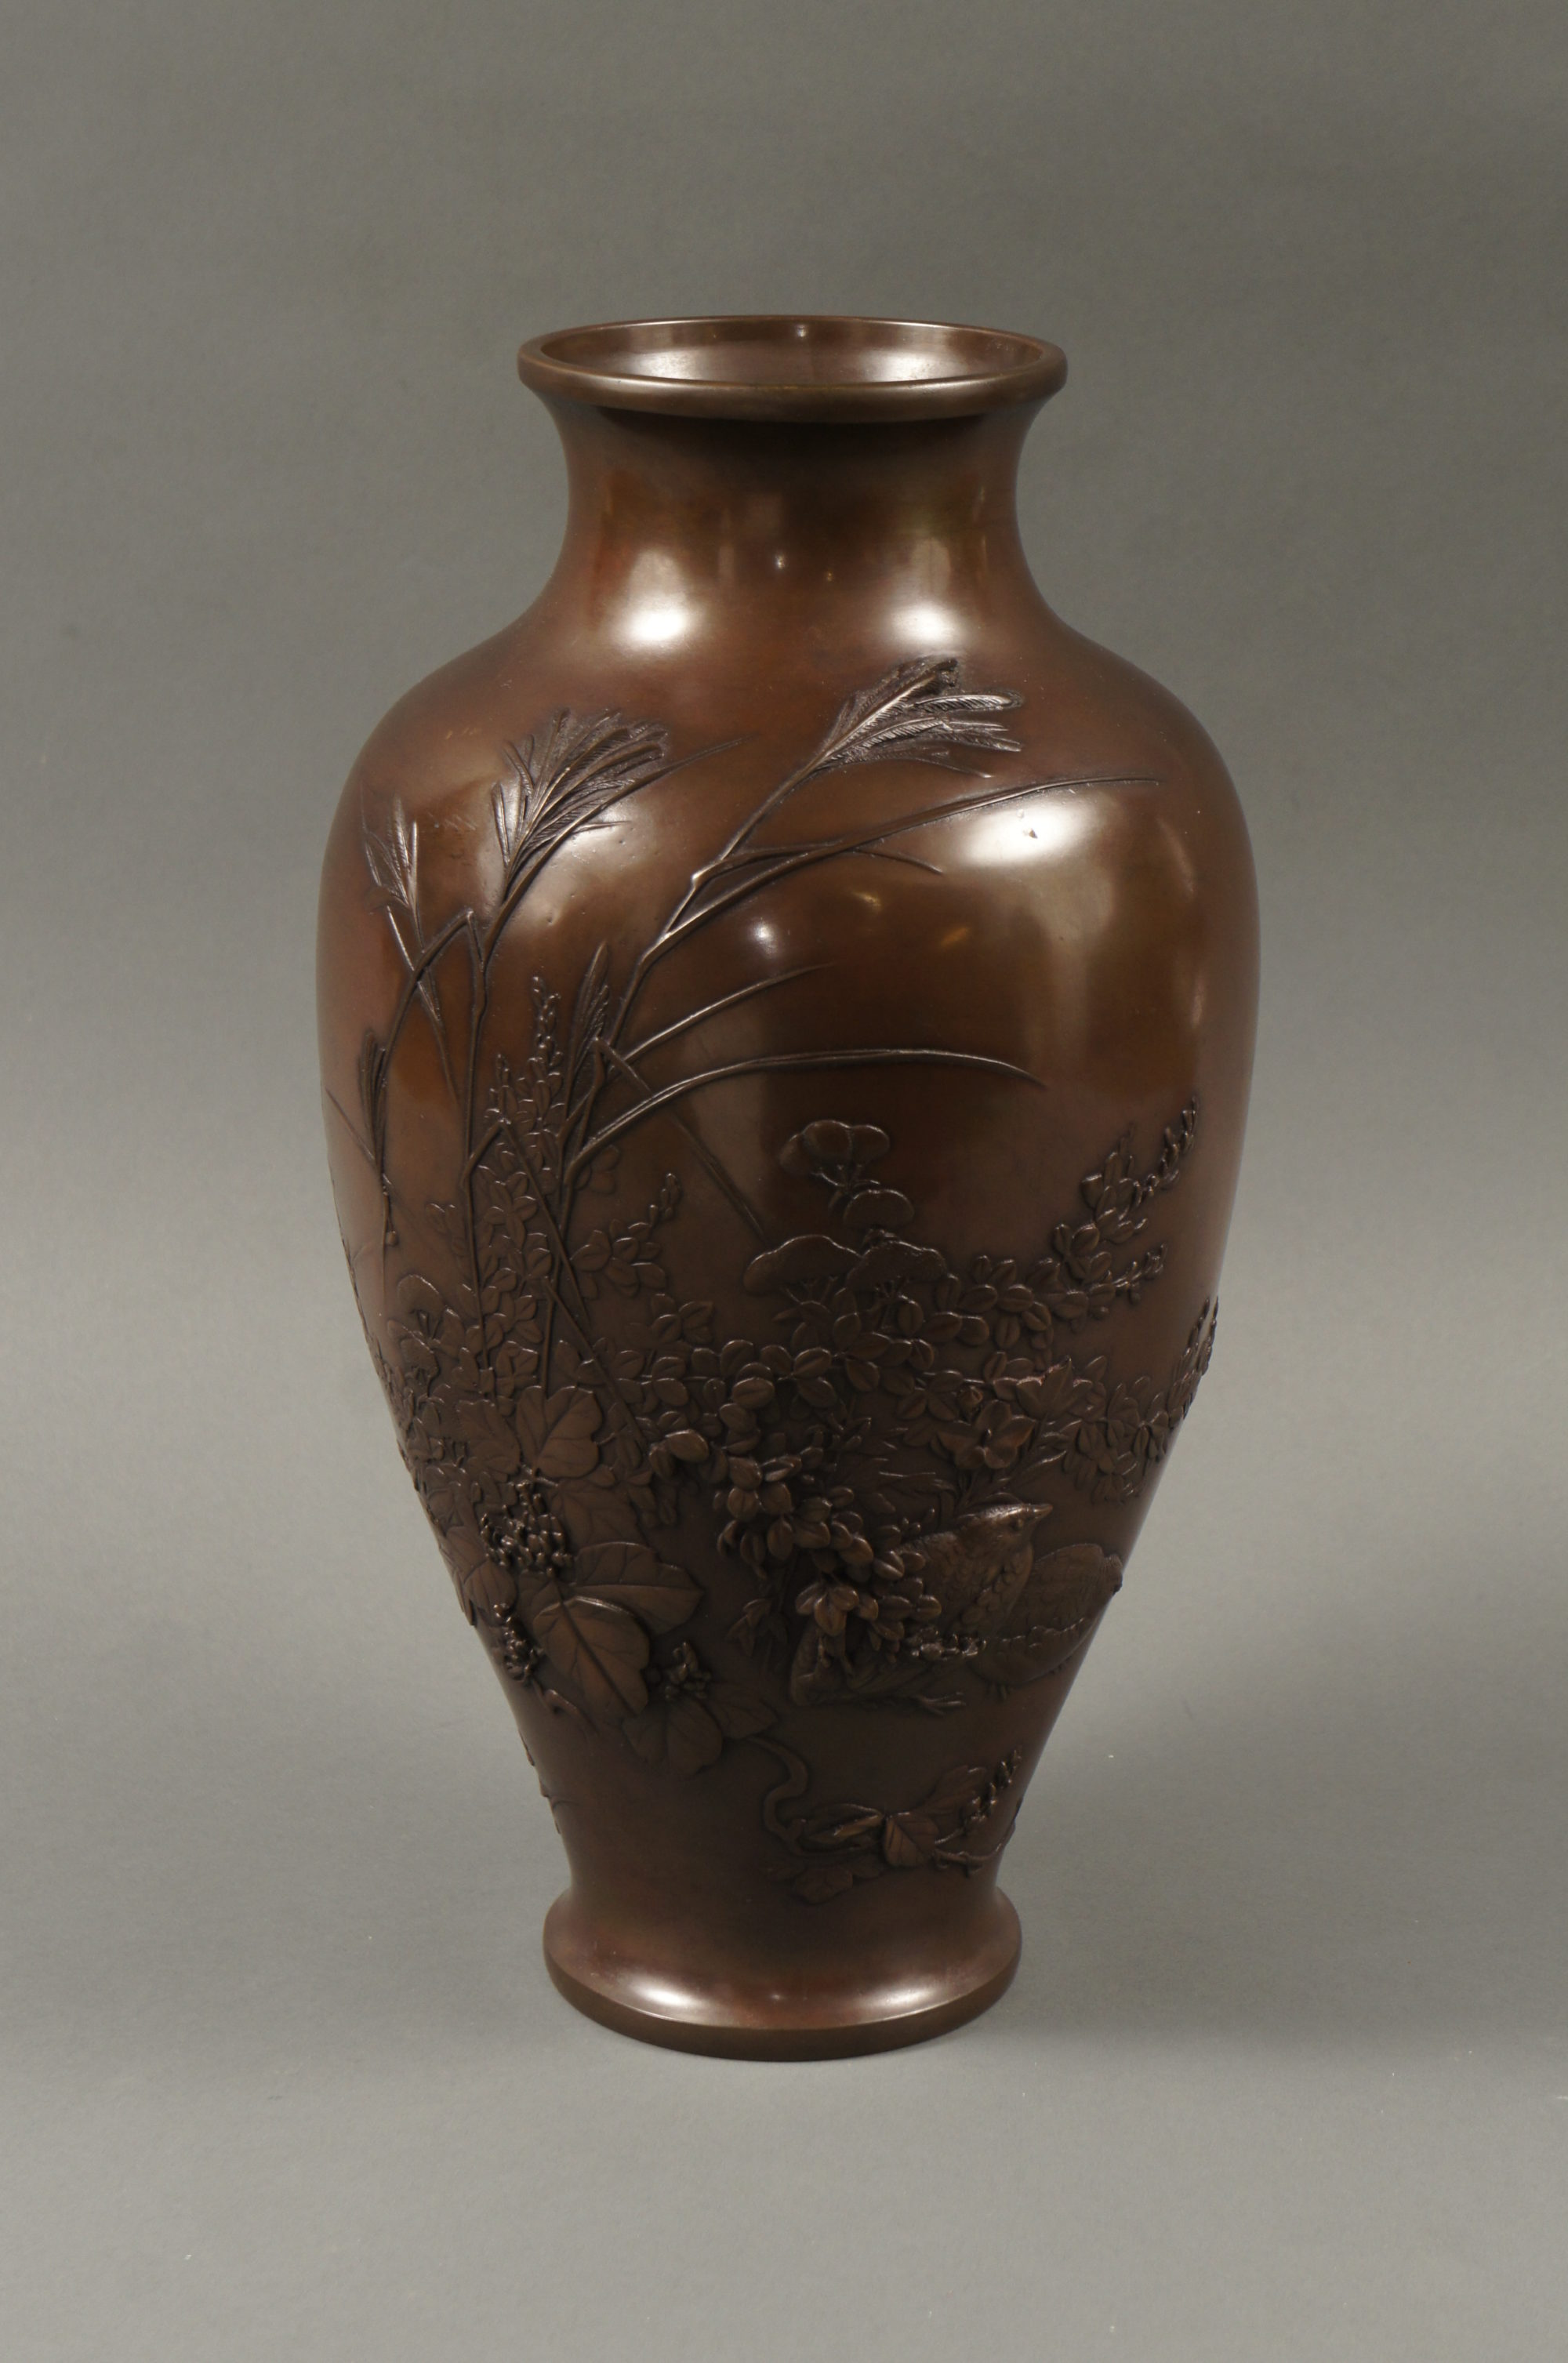 Japanese Bronze Vase with Grasses and Quail Design